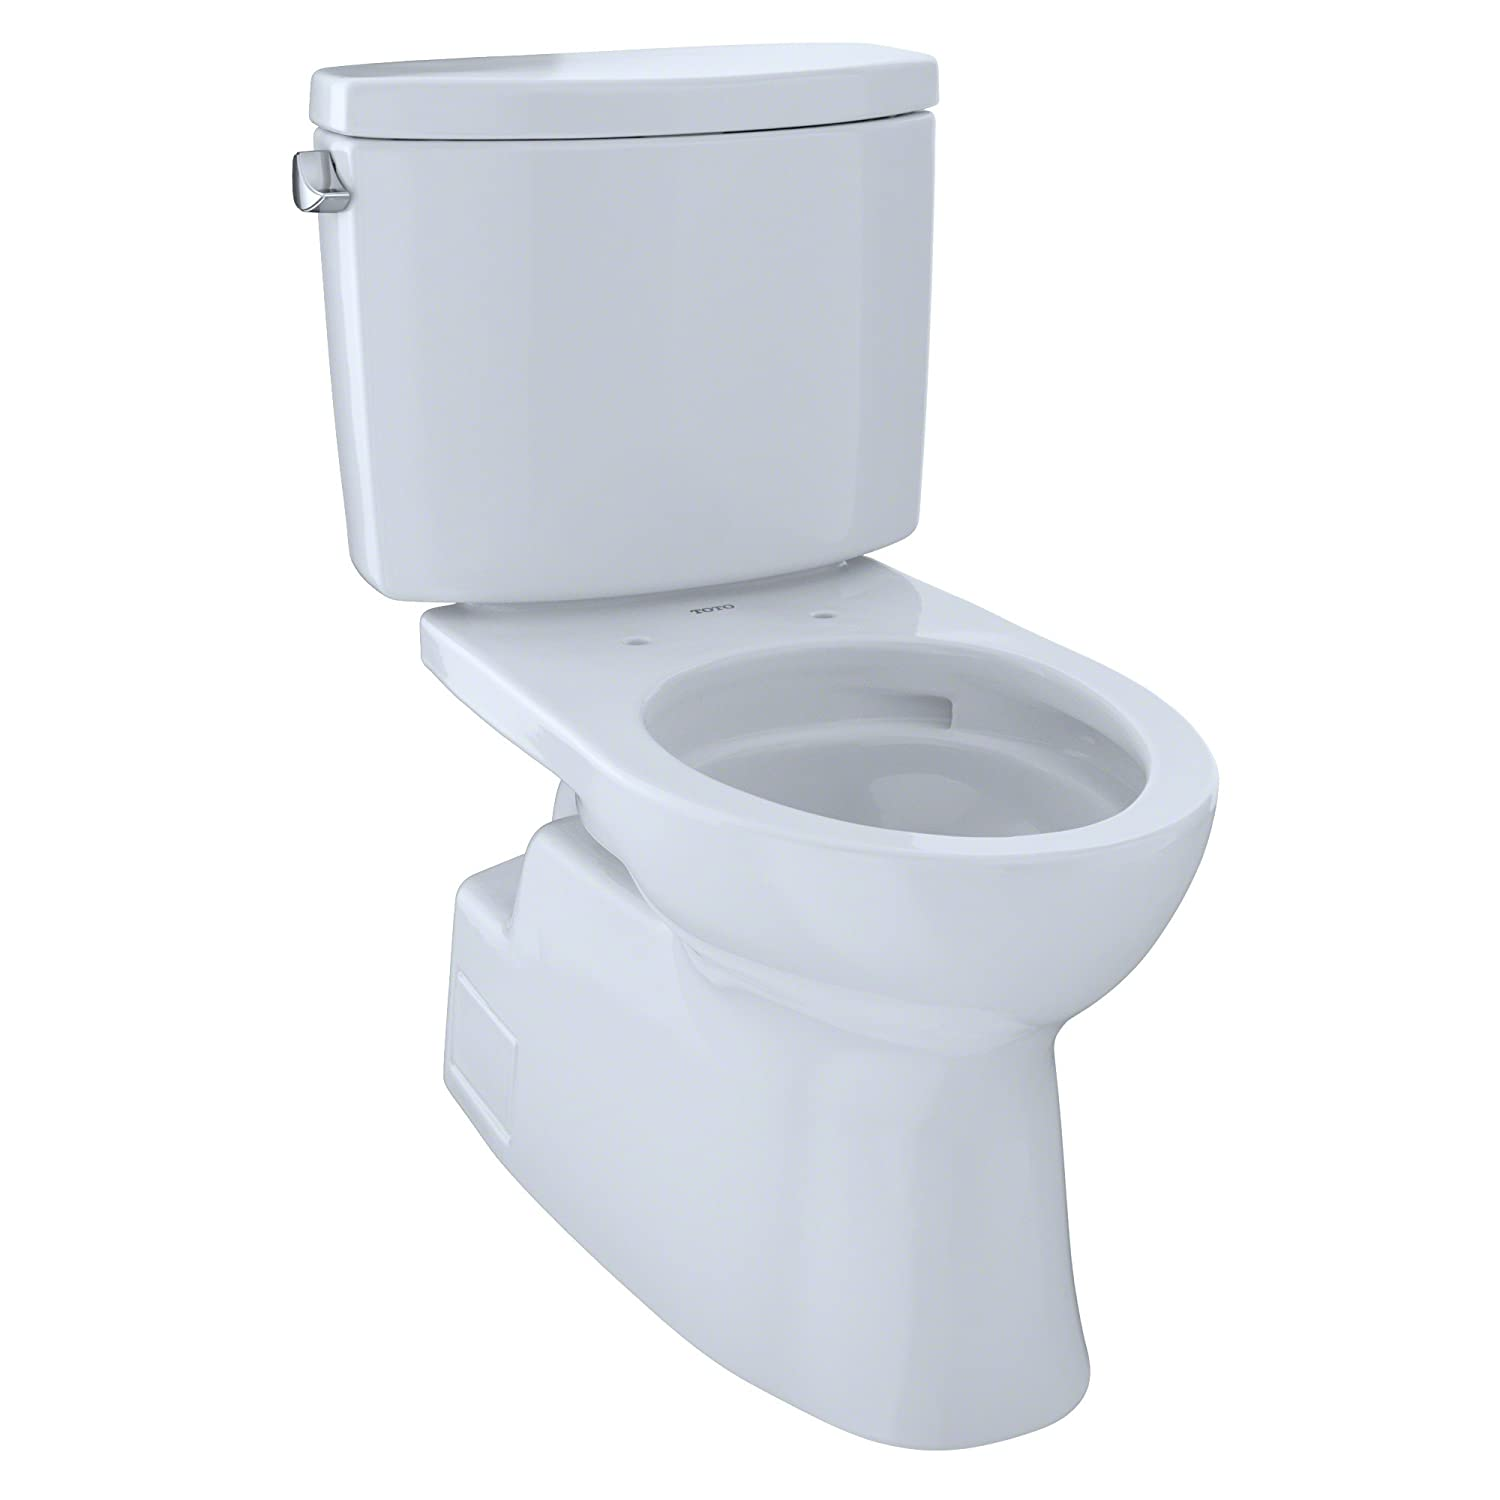 Top 5 Best Skirted Toilets Reviews in 2020 2